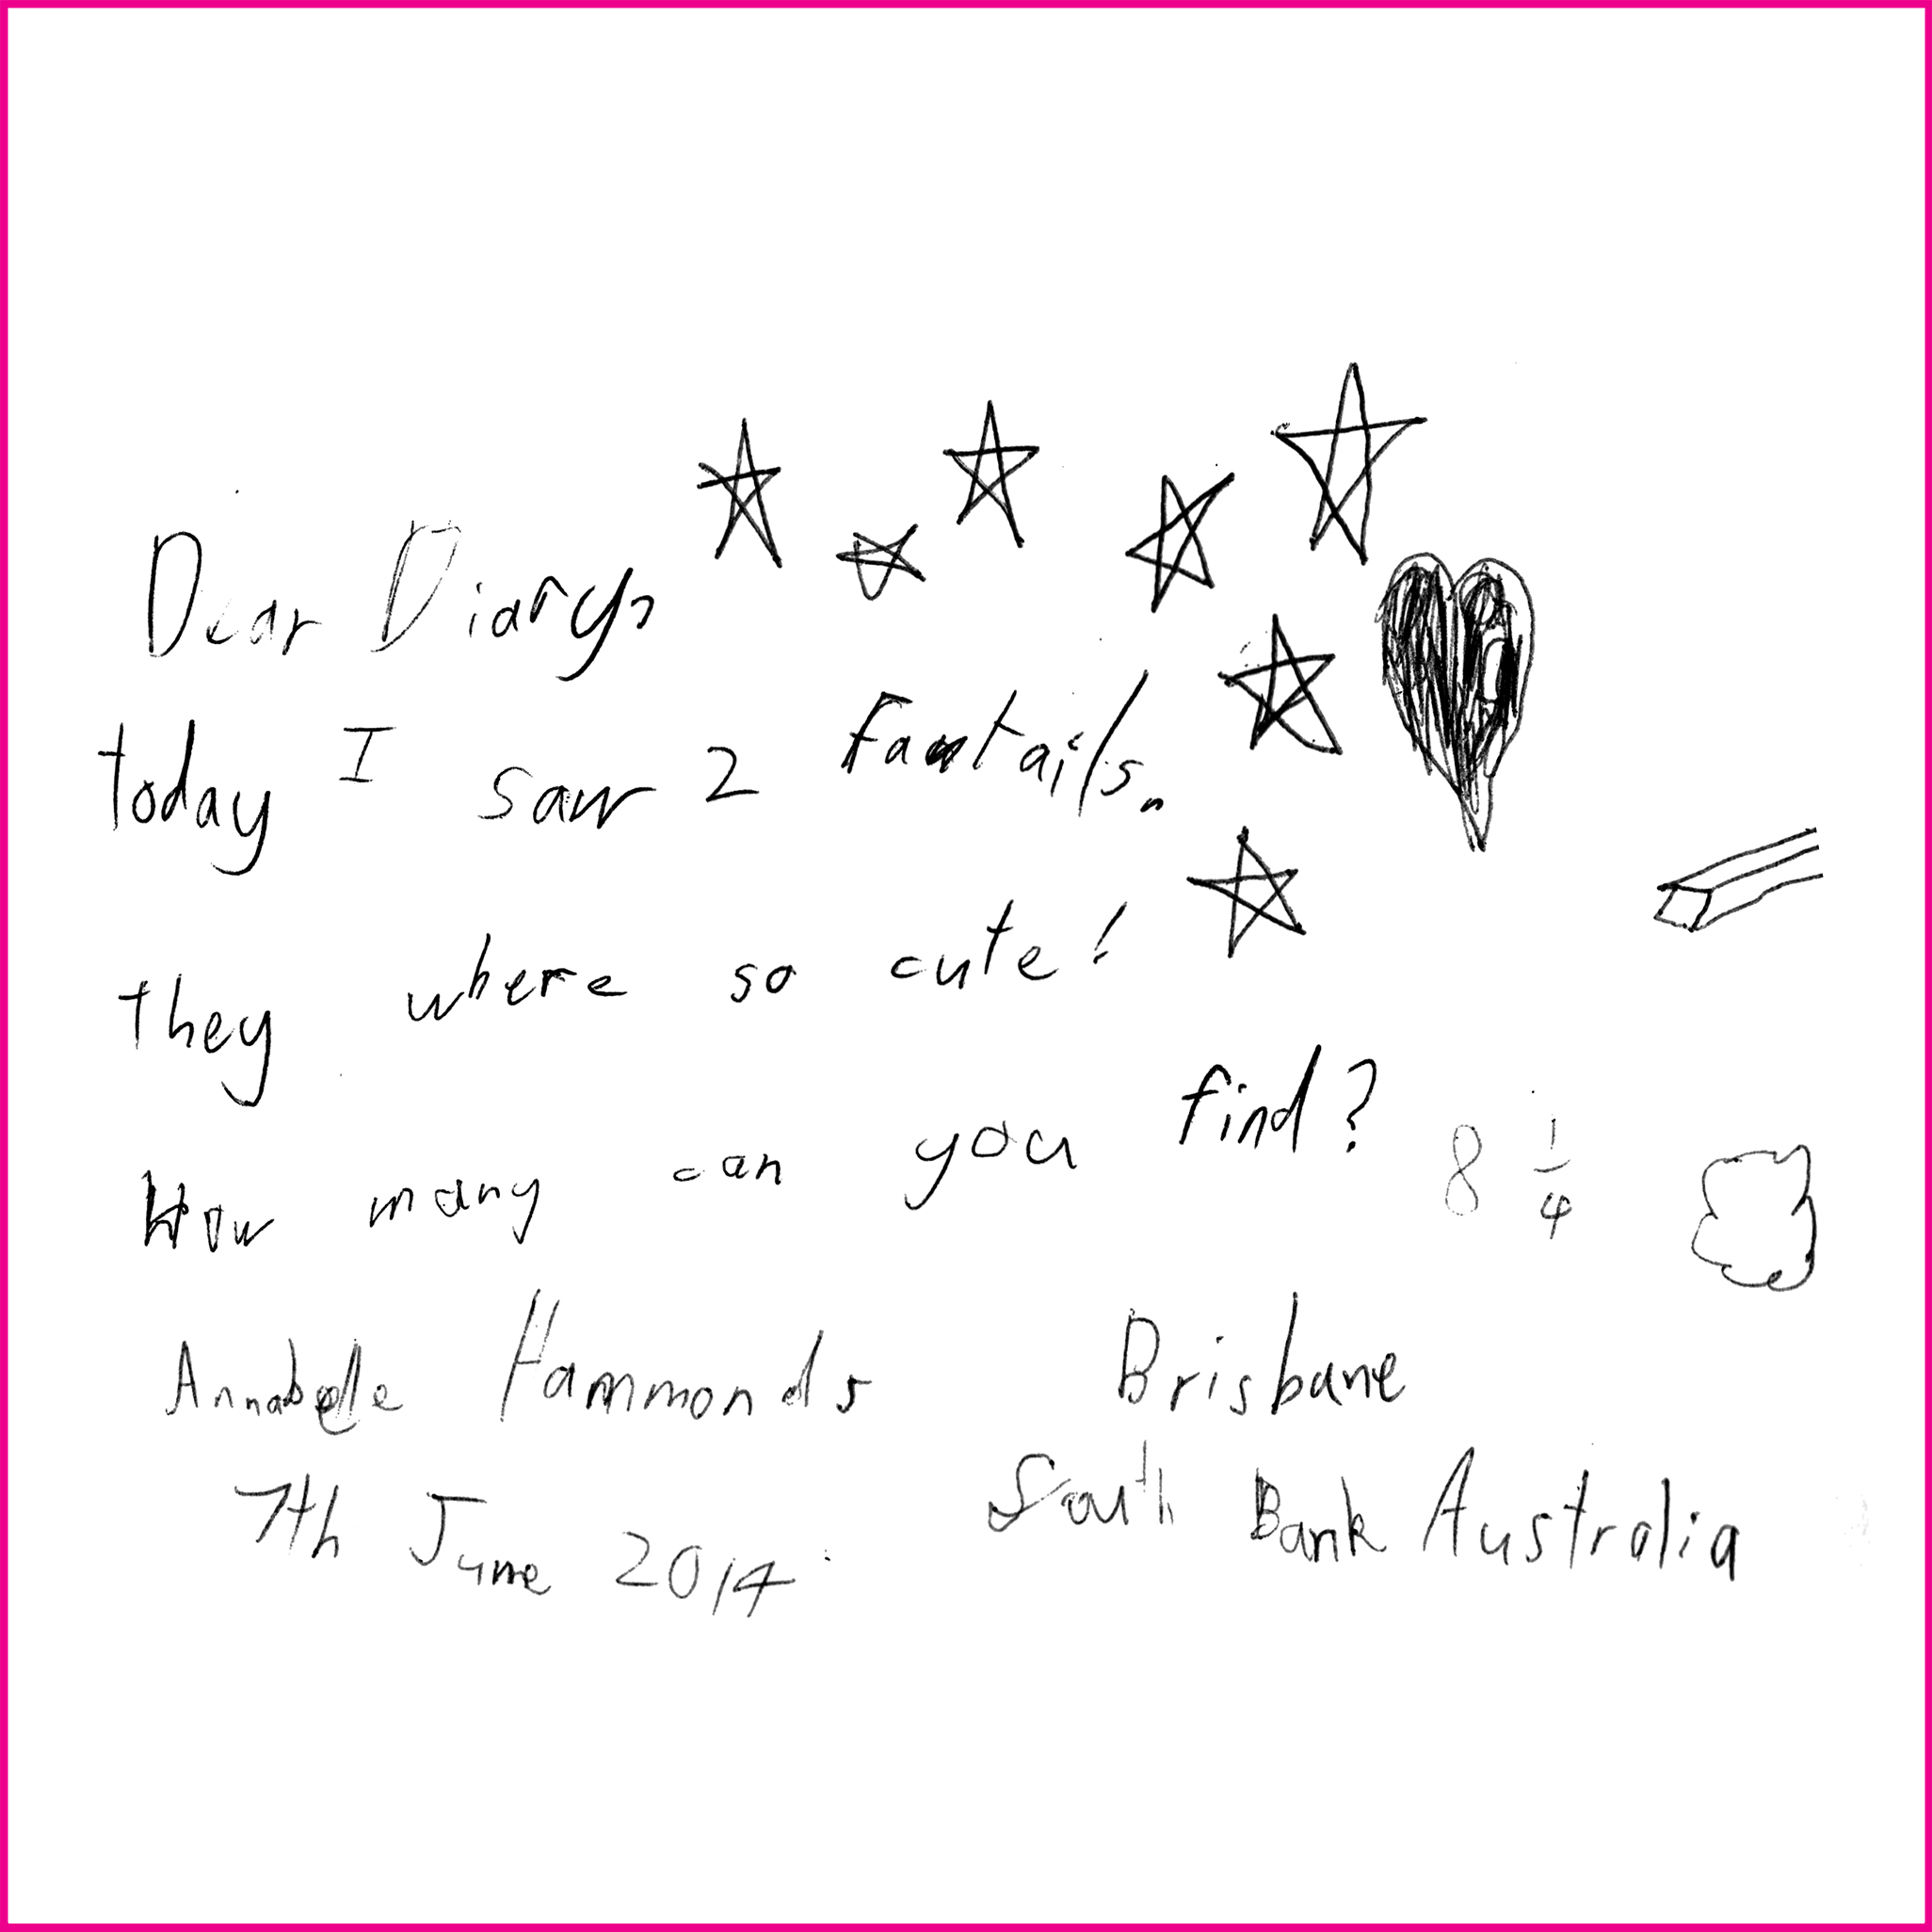 Dear Diary,  Today I saw 2 fantails. They were so cute! How many canyou find?  Annabell Hammonds, 8 ¼